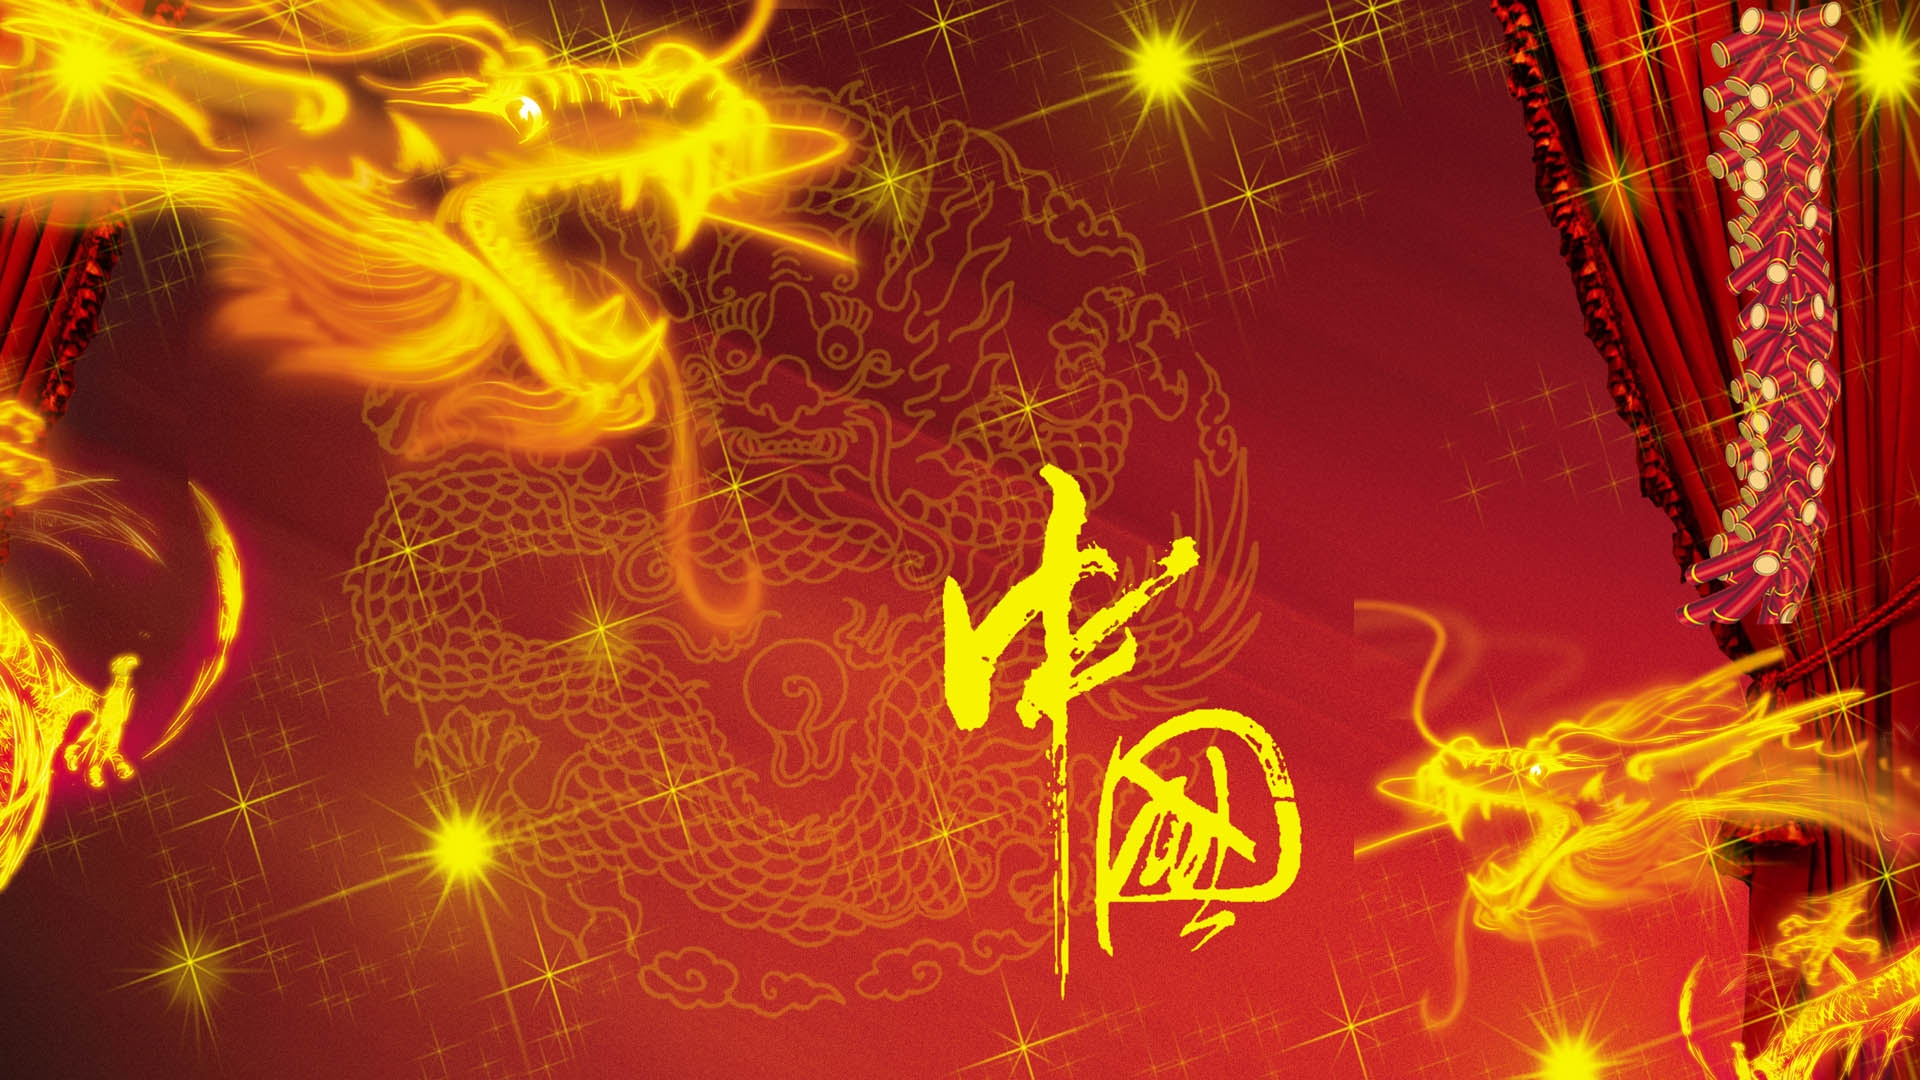 chinese dragon Computer Wallpapers Desktop Backgrounds 1920x1080 1920x1080